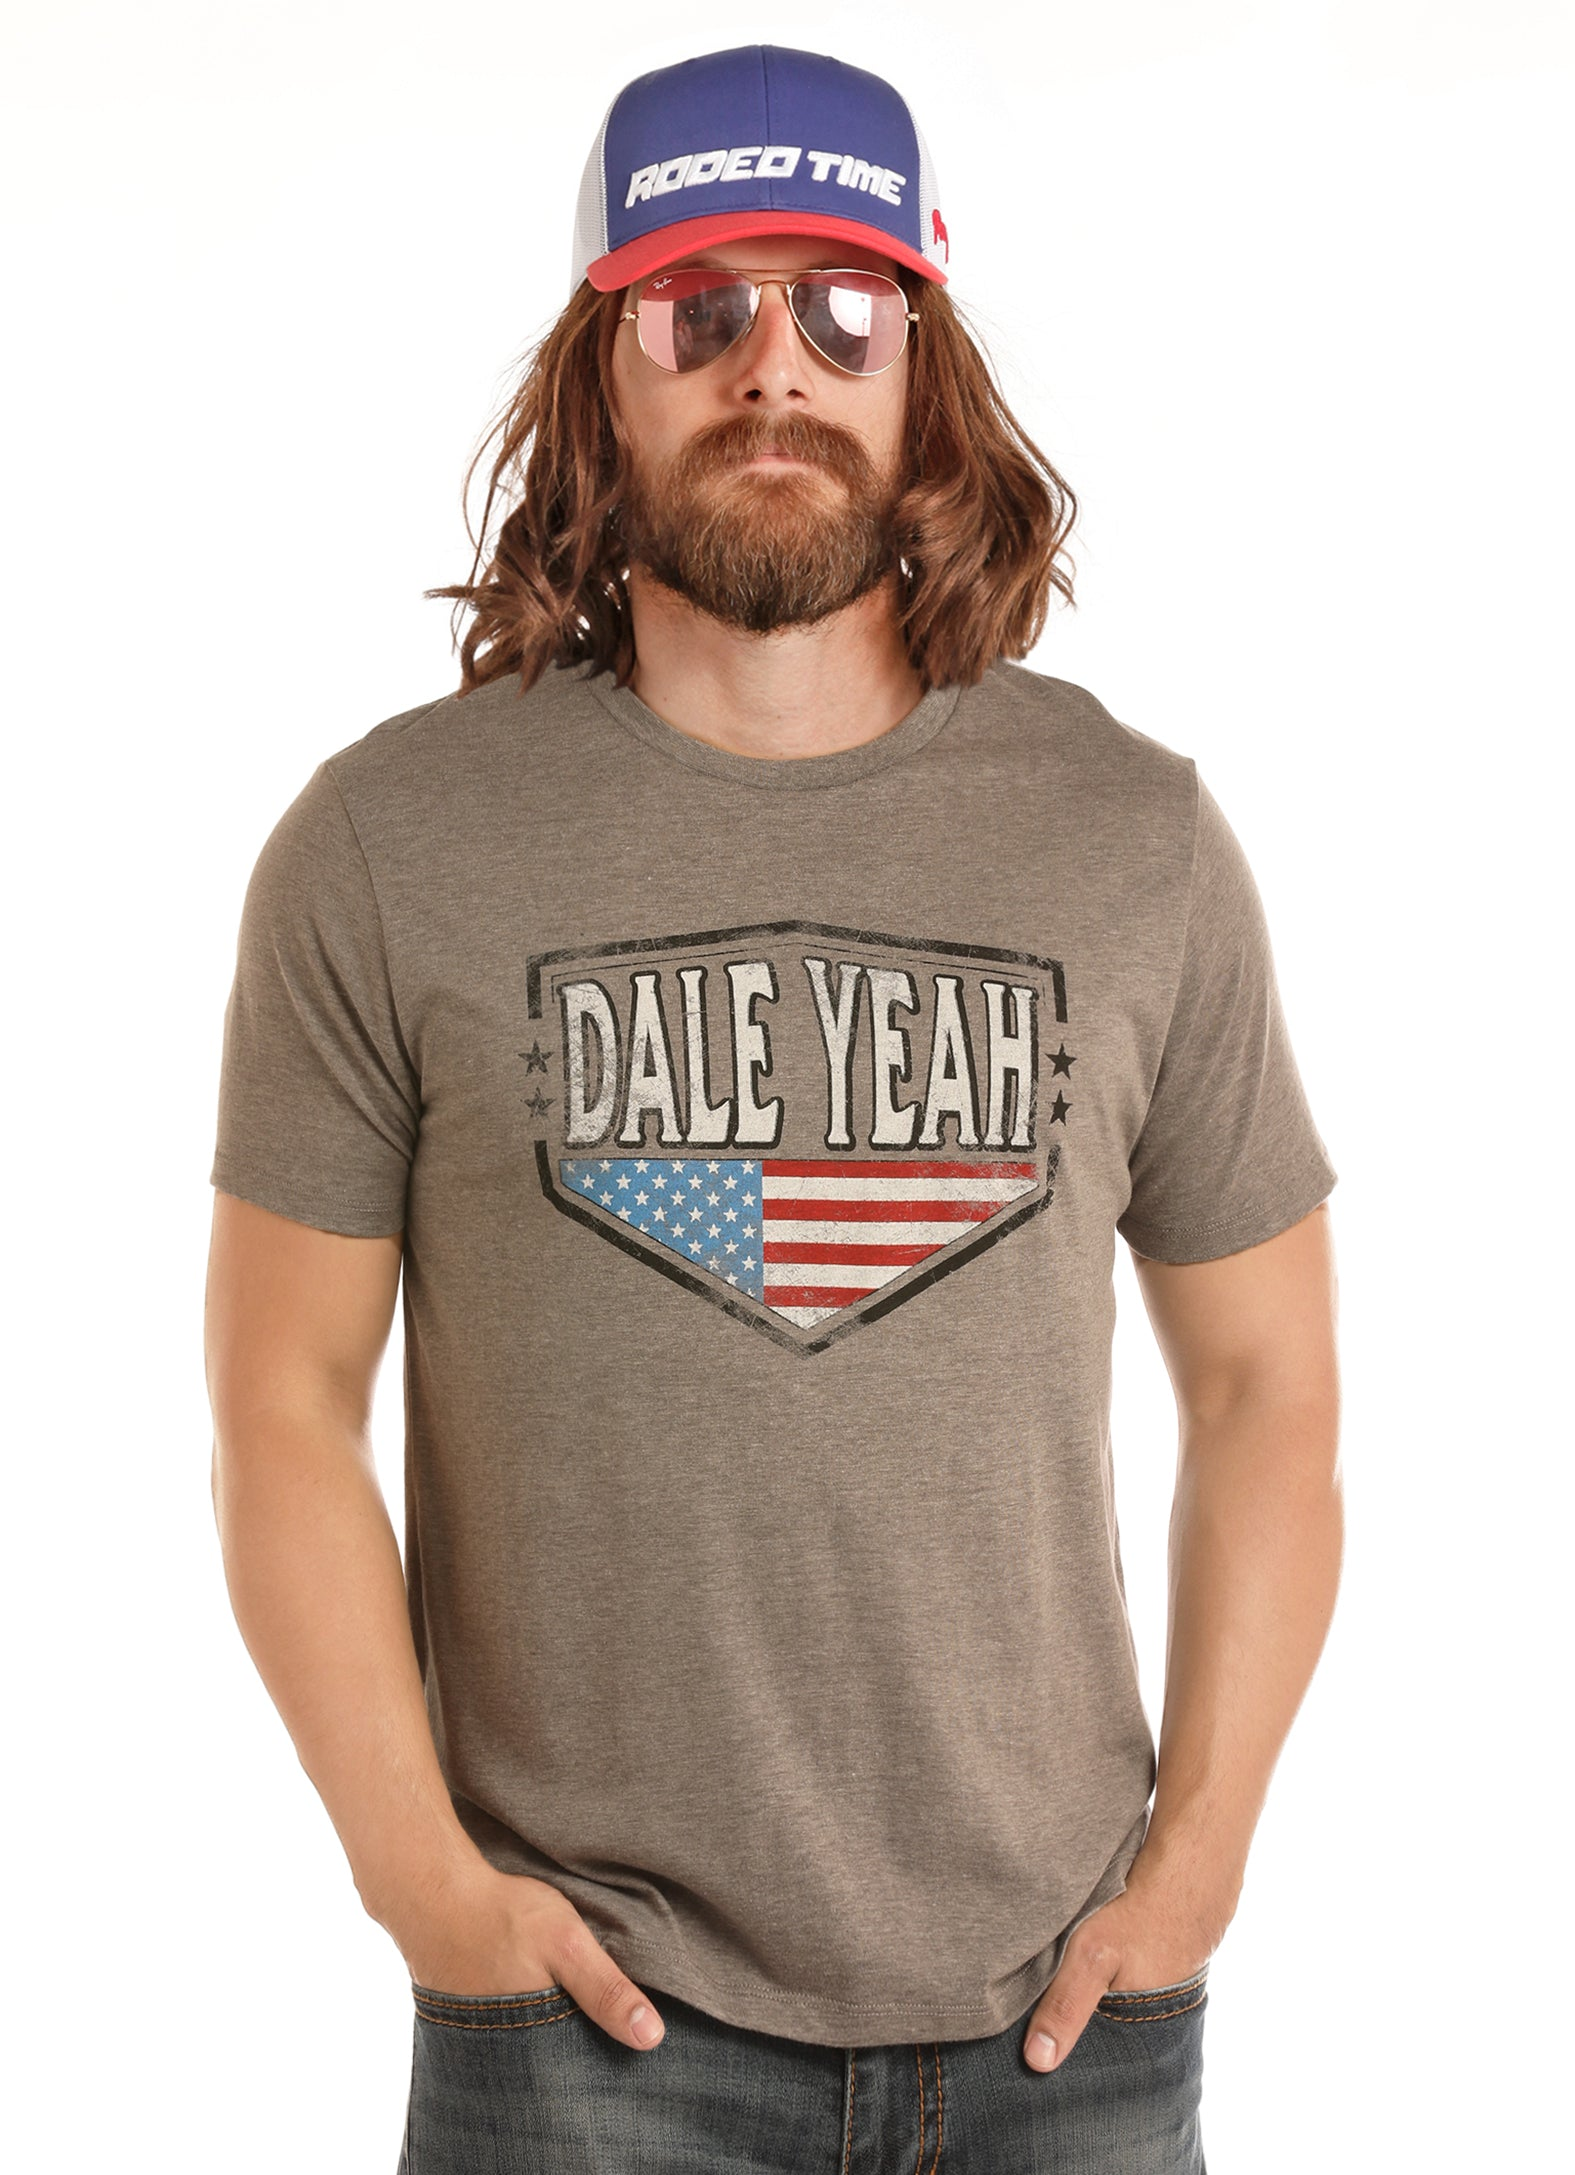 'Rock & Roll' P9-1099 - Dale Brisby Flag T-shirt - Gray